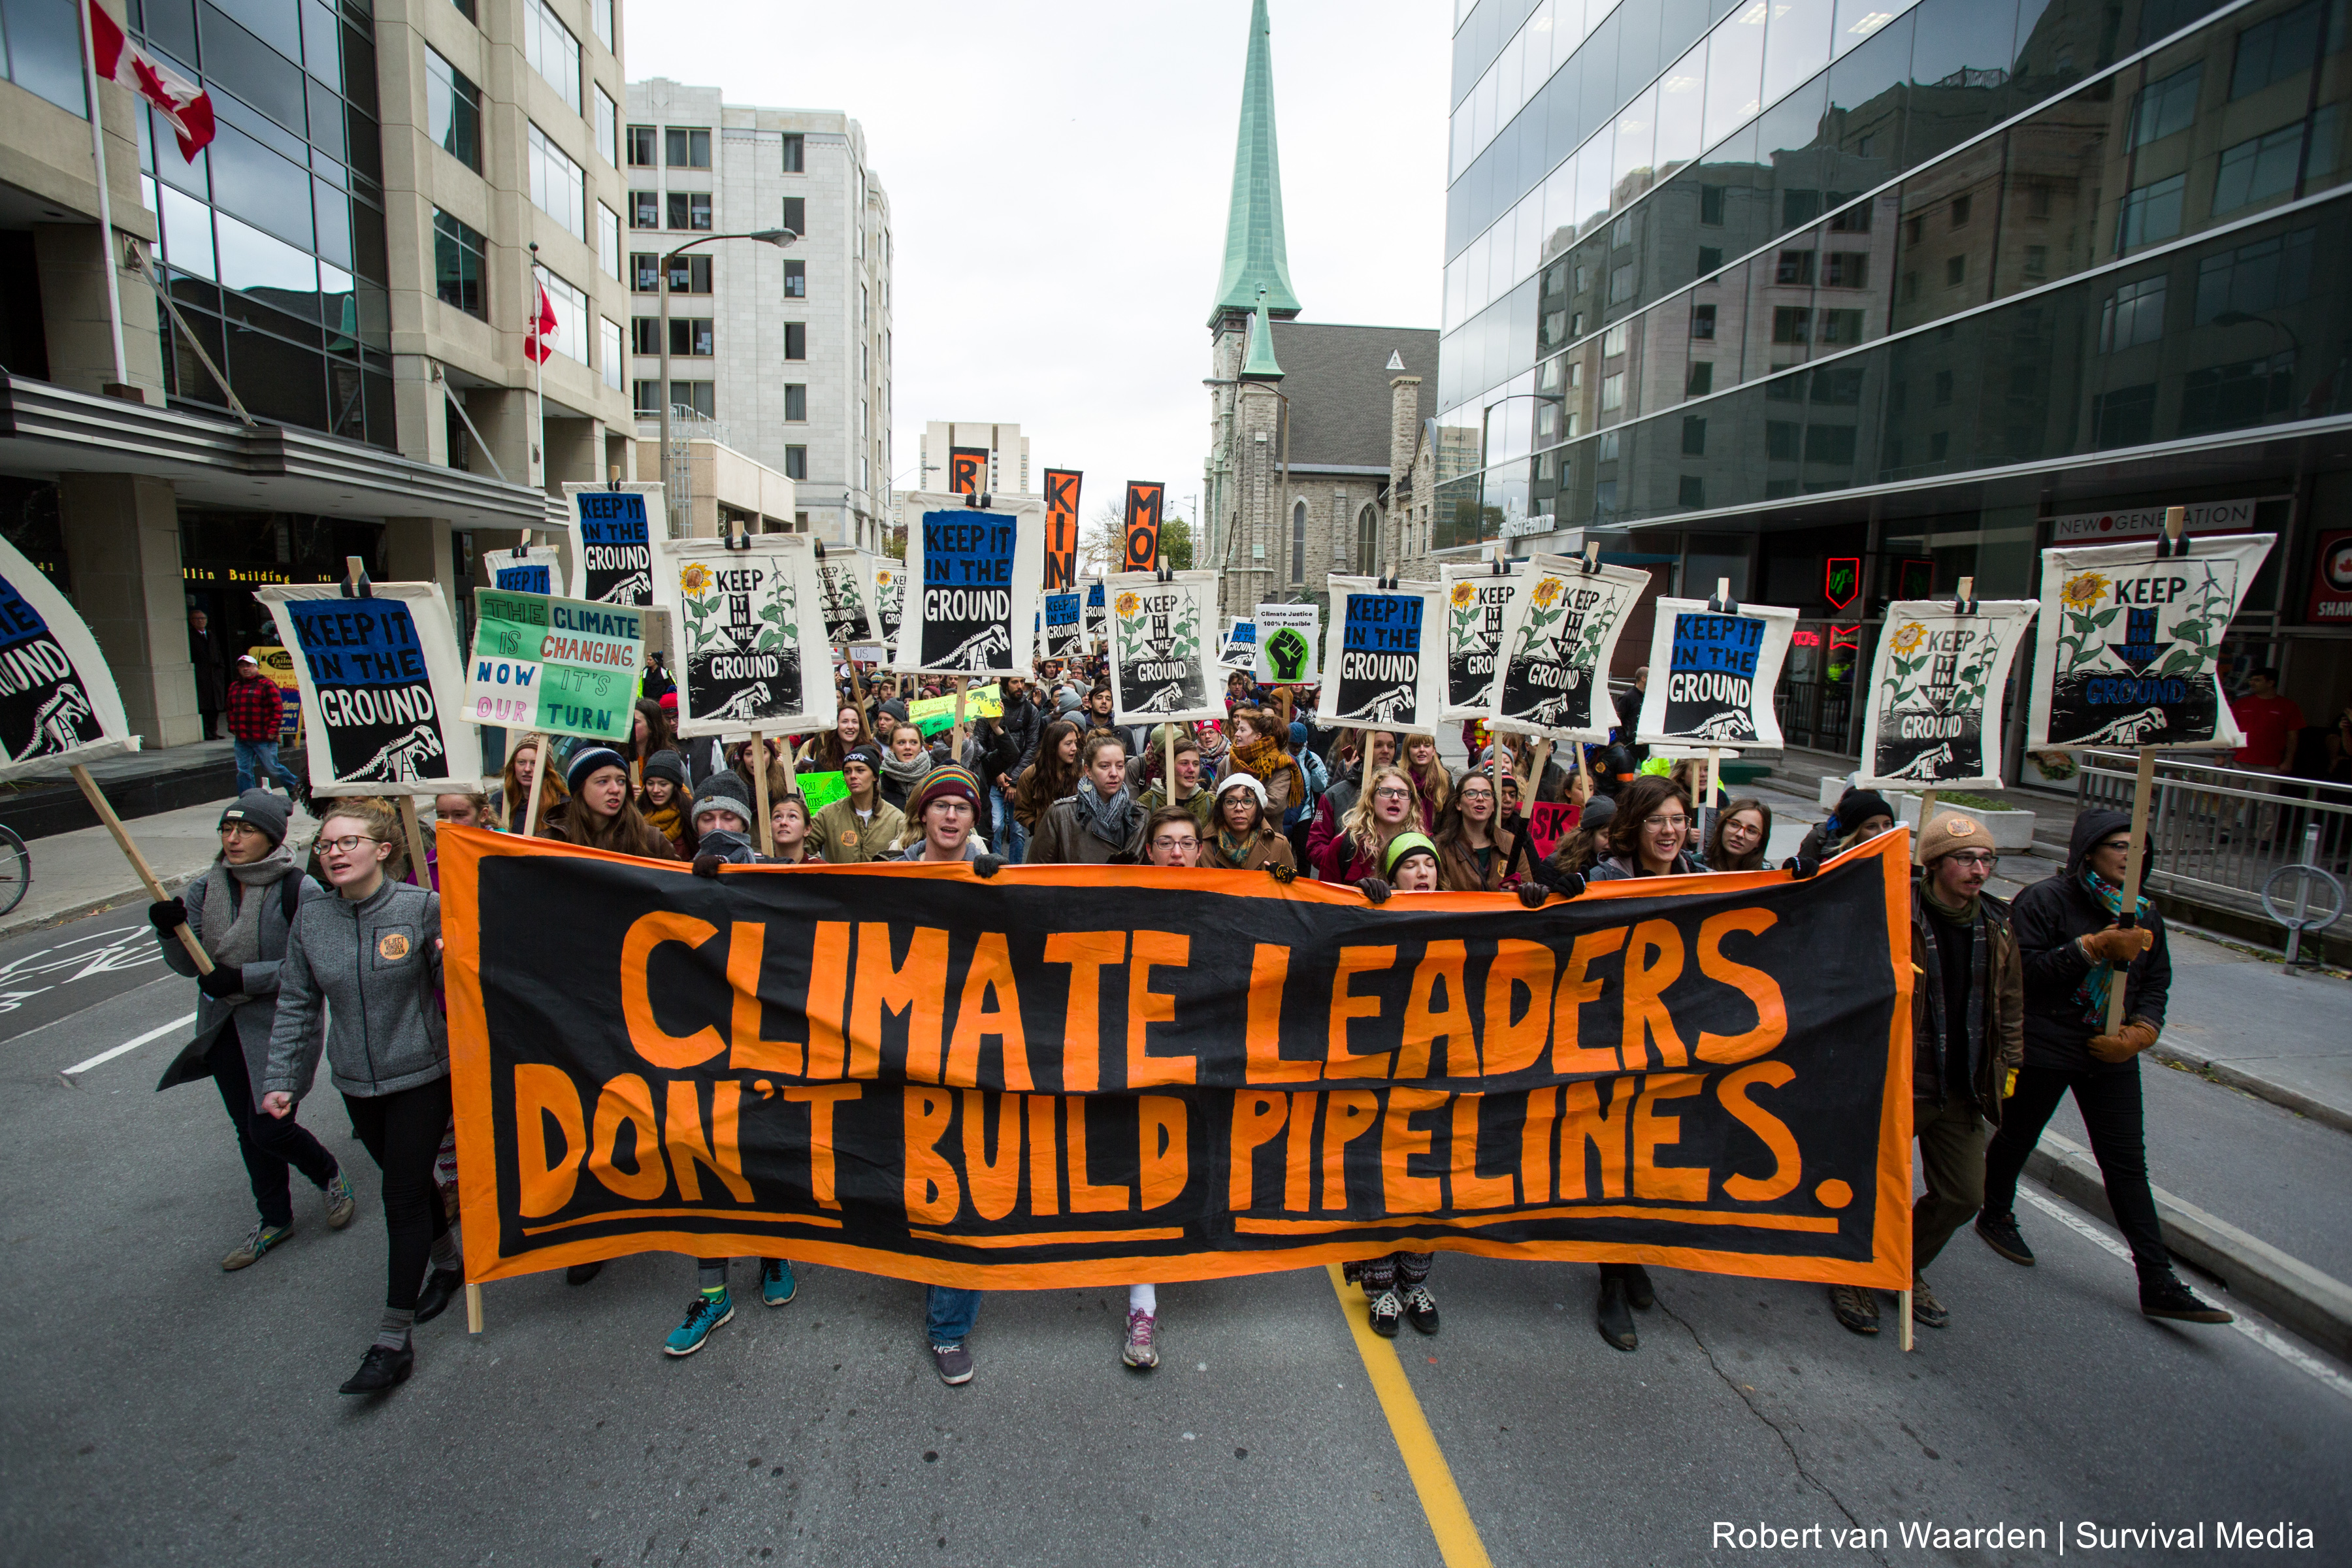 On October 24th, 99 young people were arrested in Ottawa calling on Prime Minister Trudeau to reject the Kinder Morgan tar sands pipeline. Together, they gave the Canadian Prime Minister a 'Climate 101 Crash Course' which starts with the most basic lesson -- climate leaders don't build pipelines. (Credit: Robert van Waarden   Survival Media)